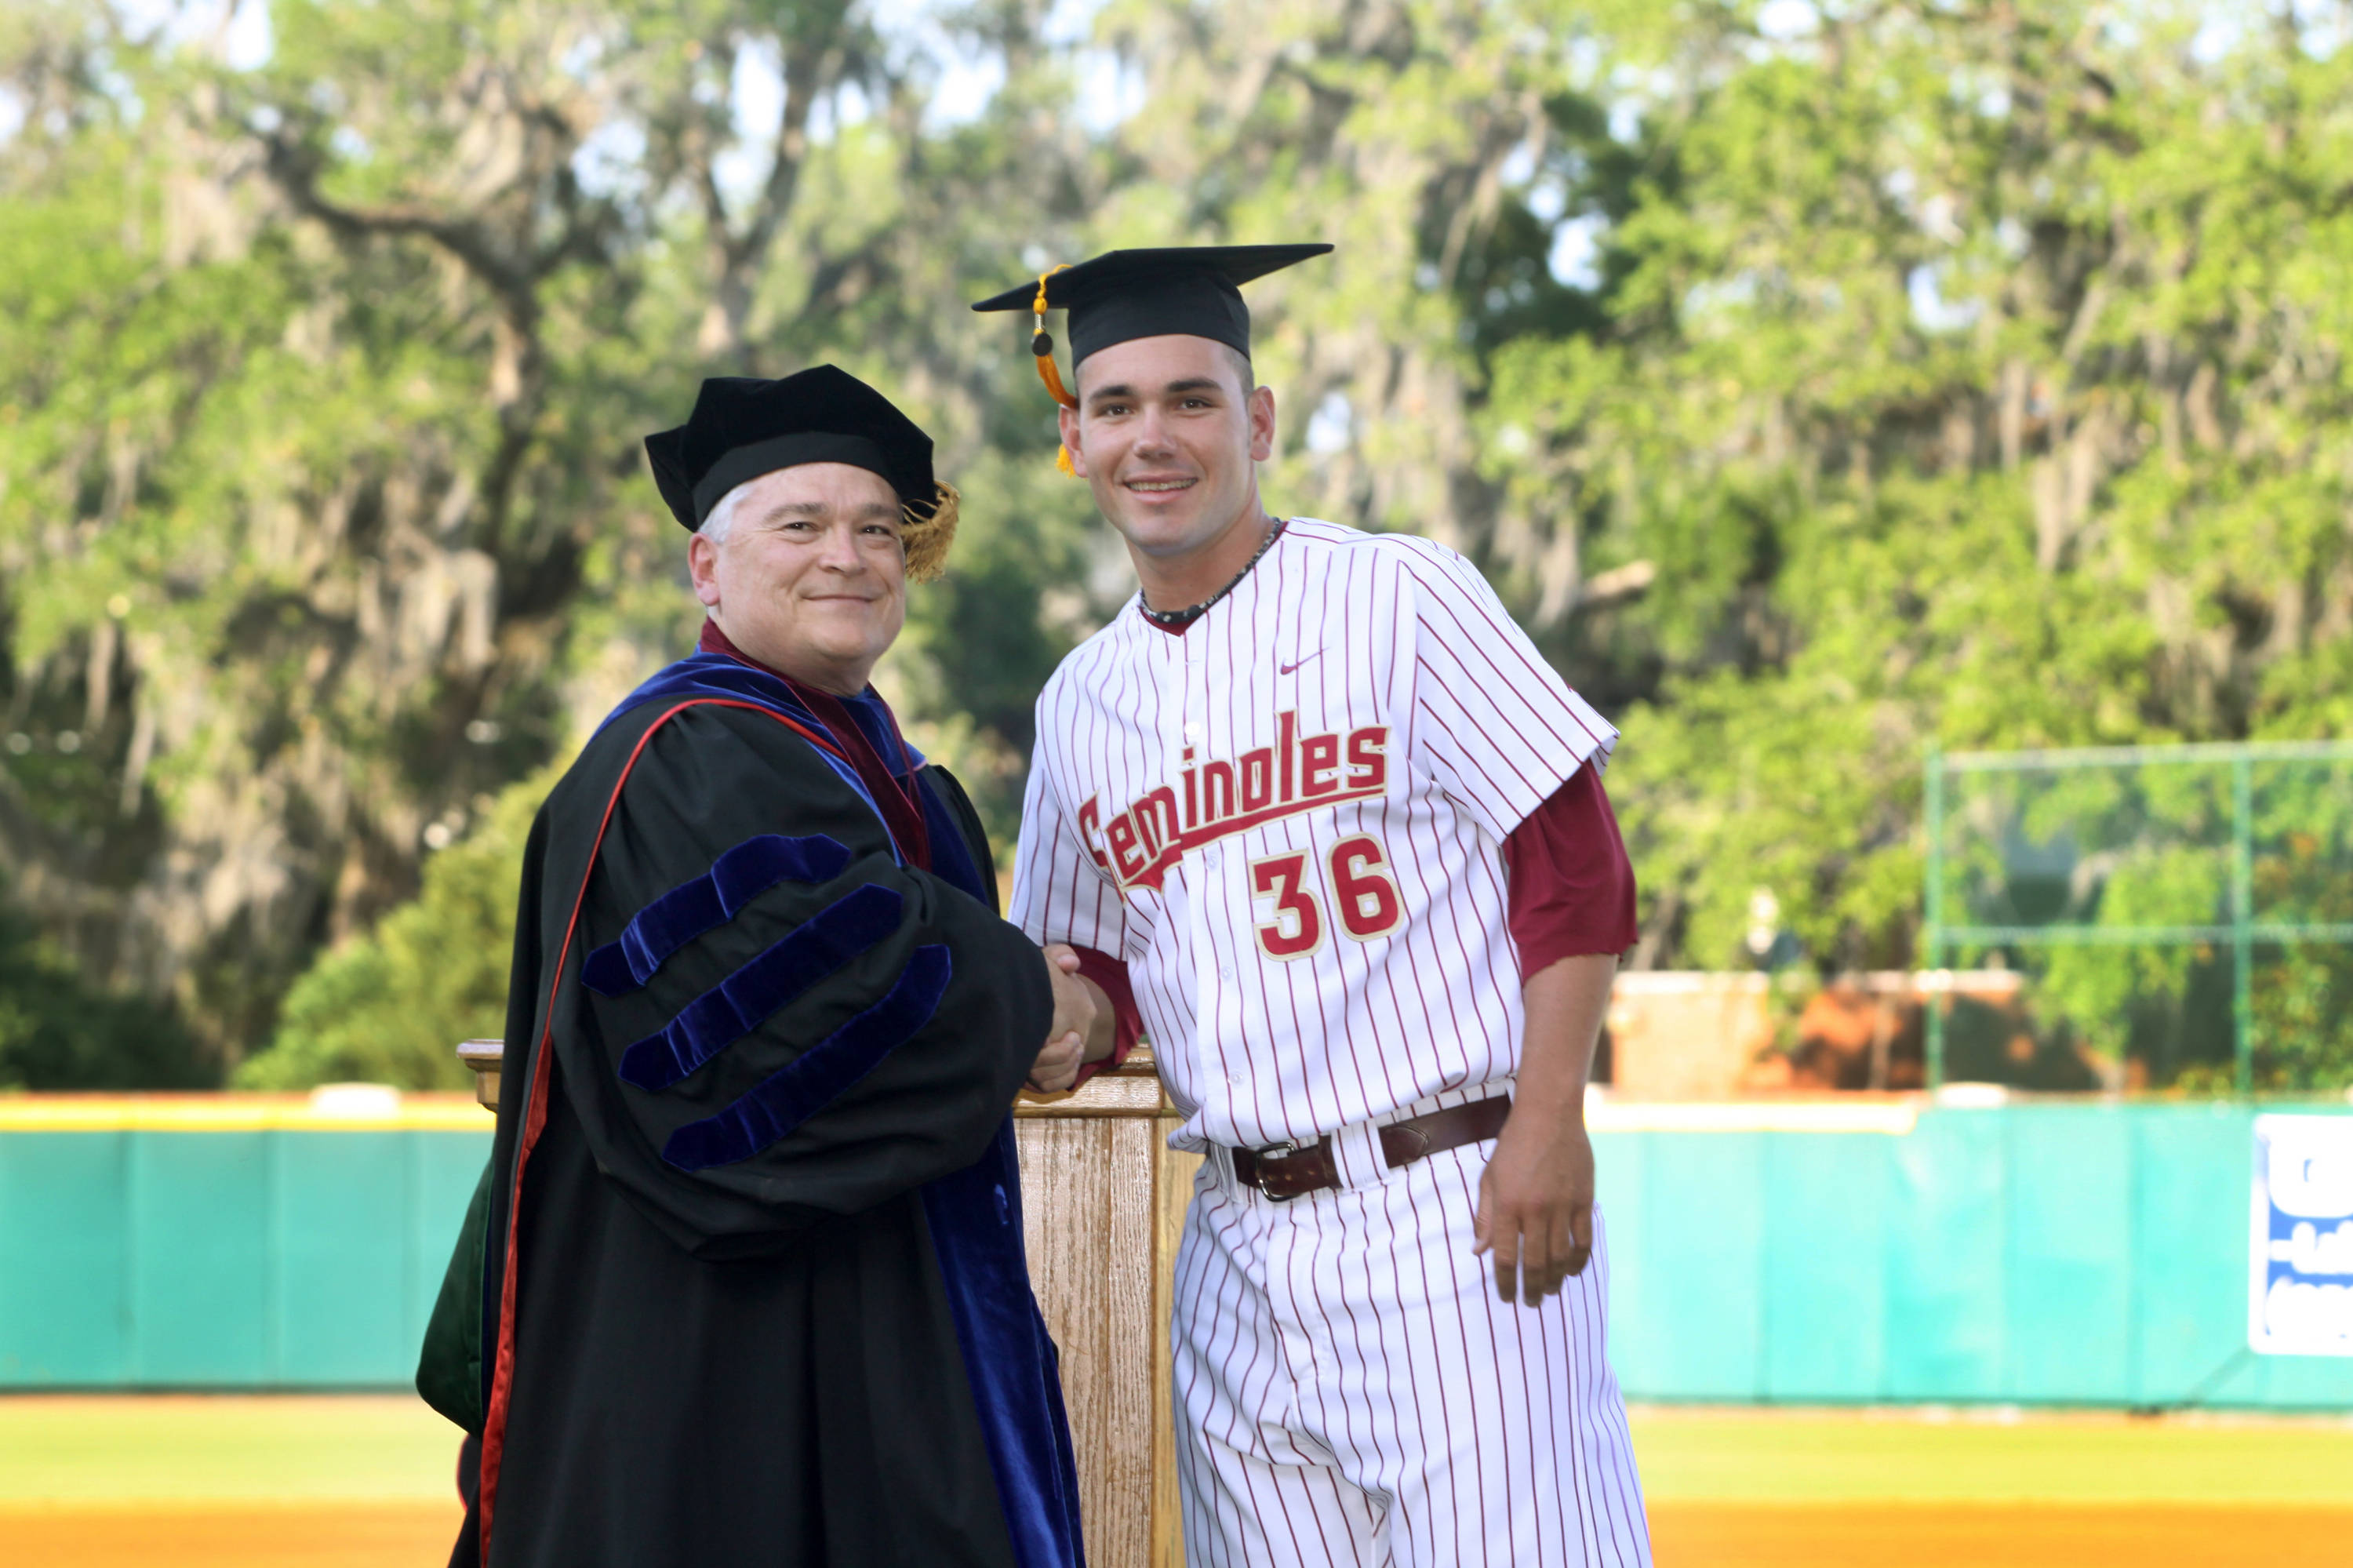 2011 Spring Graduation Ceremony held at Dick Howser Stadium to honor the graduating baseball seniors. Robby Scott (36) with President Barron